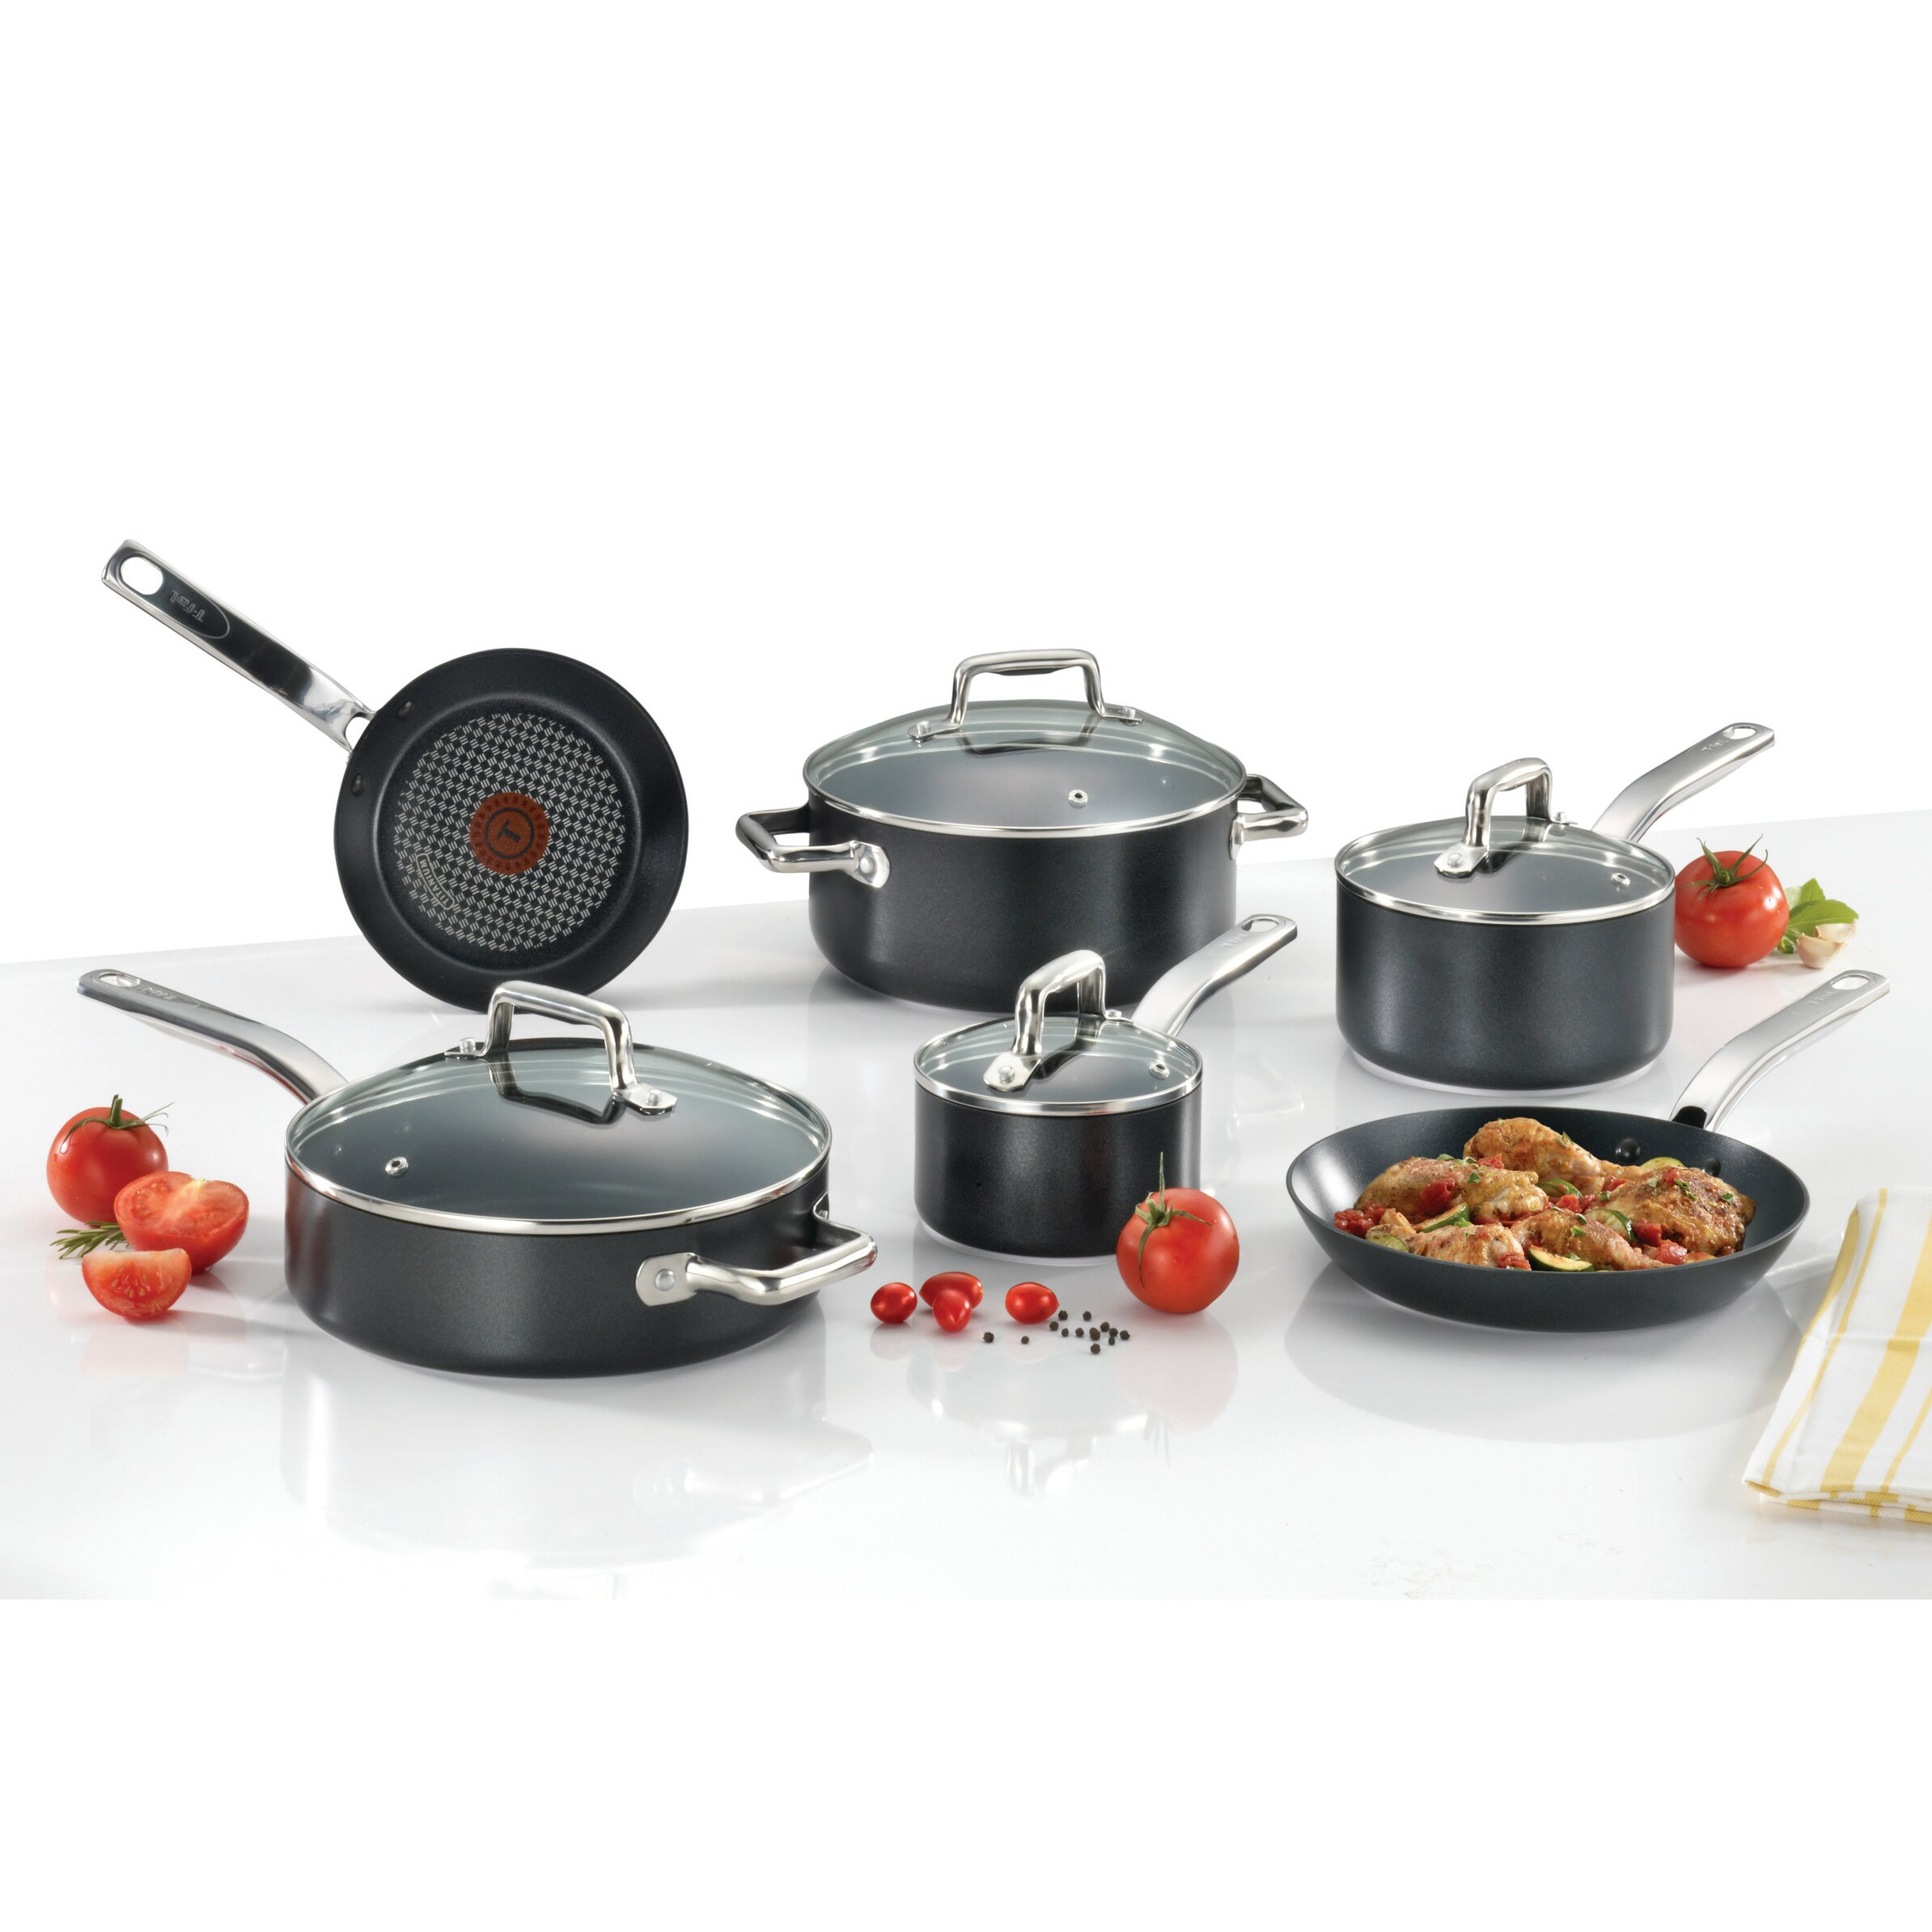 Non Stick Kitchen Appliances T Fal Prograde 10 Piece Non Stick Cookware Set Reviews Wayfair